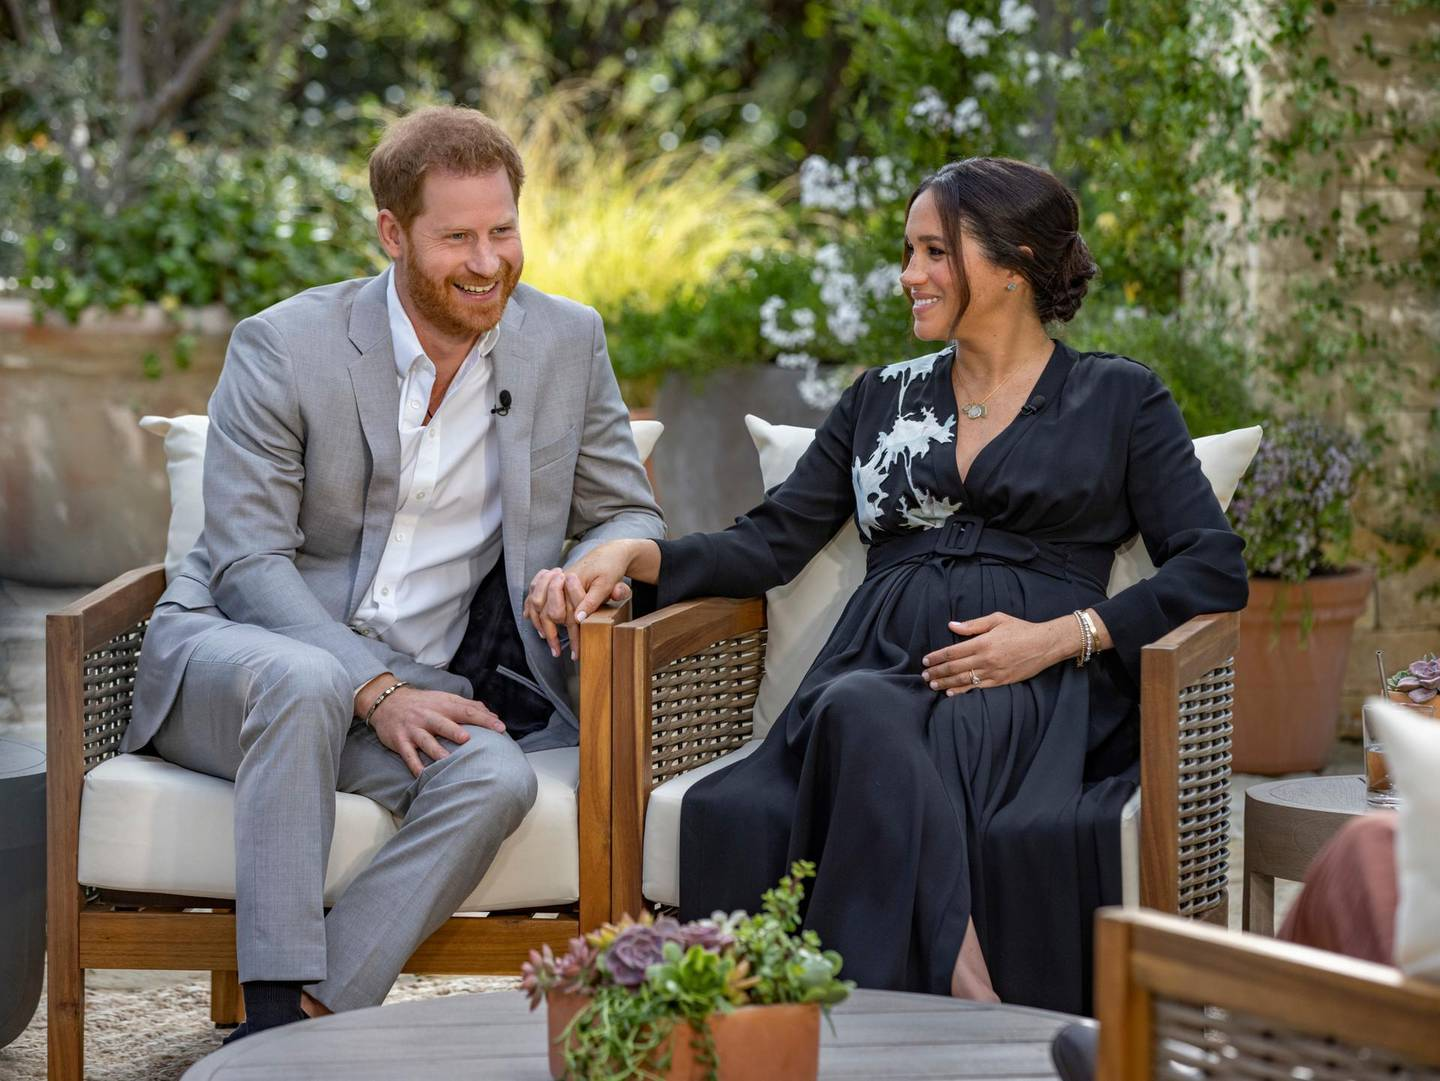 Feb 16, 2021; Prince Harry and Meghan, The Duke and Duchess of Sussex, speak about expecting their second child during an interview with Oprah Winfrey. Featuring Oprah Winfrey as she sits down with Prince Harry and Meghan, The Duke and Duchess of Sussex, will be broadcast as a two-hour exclusive primetime special on Sunday, March 7 from 8:00-10:00 PM, ET/PT on the CBS Television Network. Mandatory Credit: Joe Pugliese/CBS/Harpo Productions